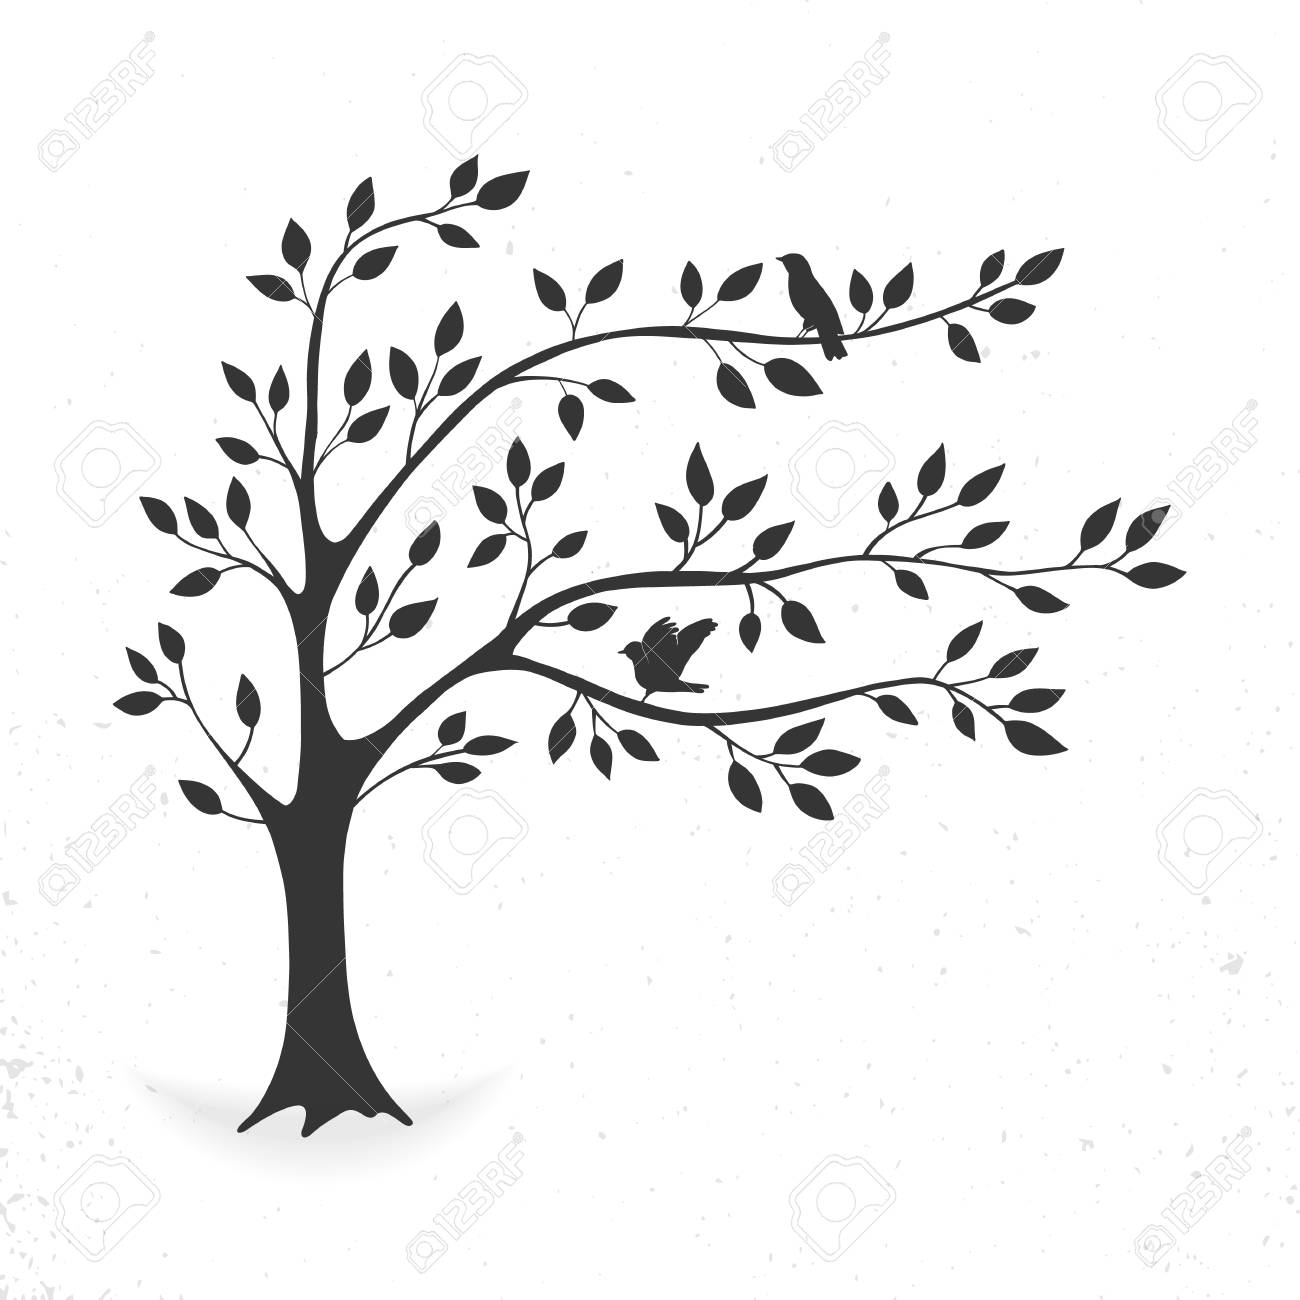 Tree with leaves and birds - 103011808